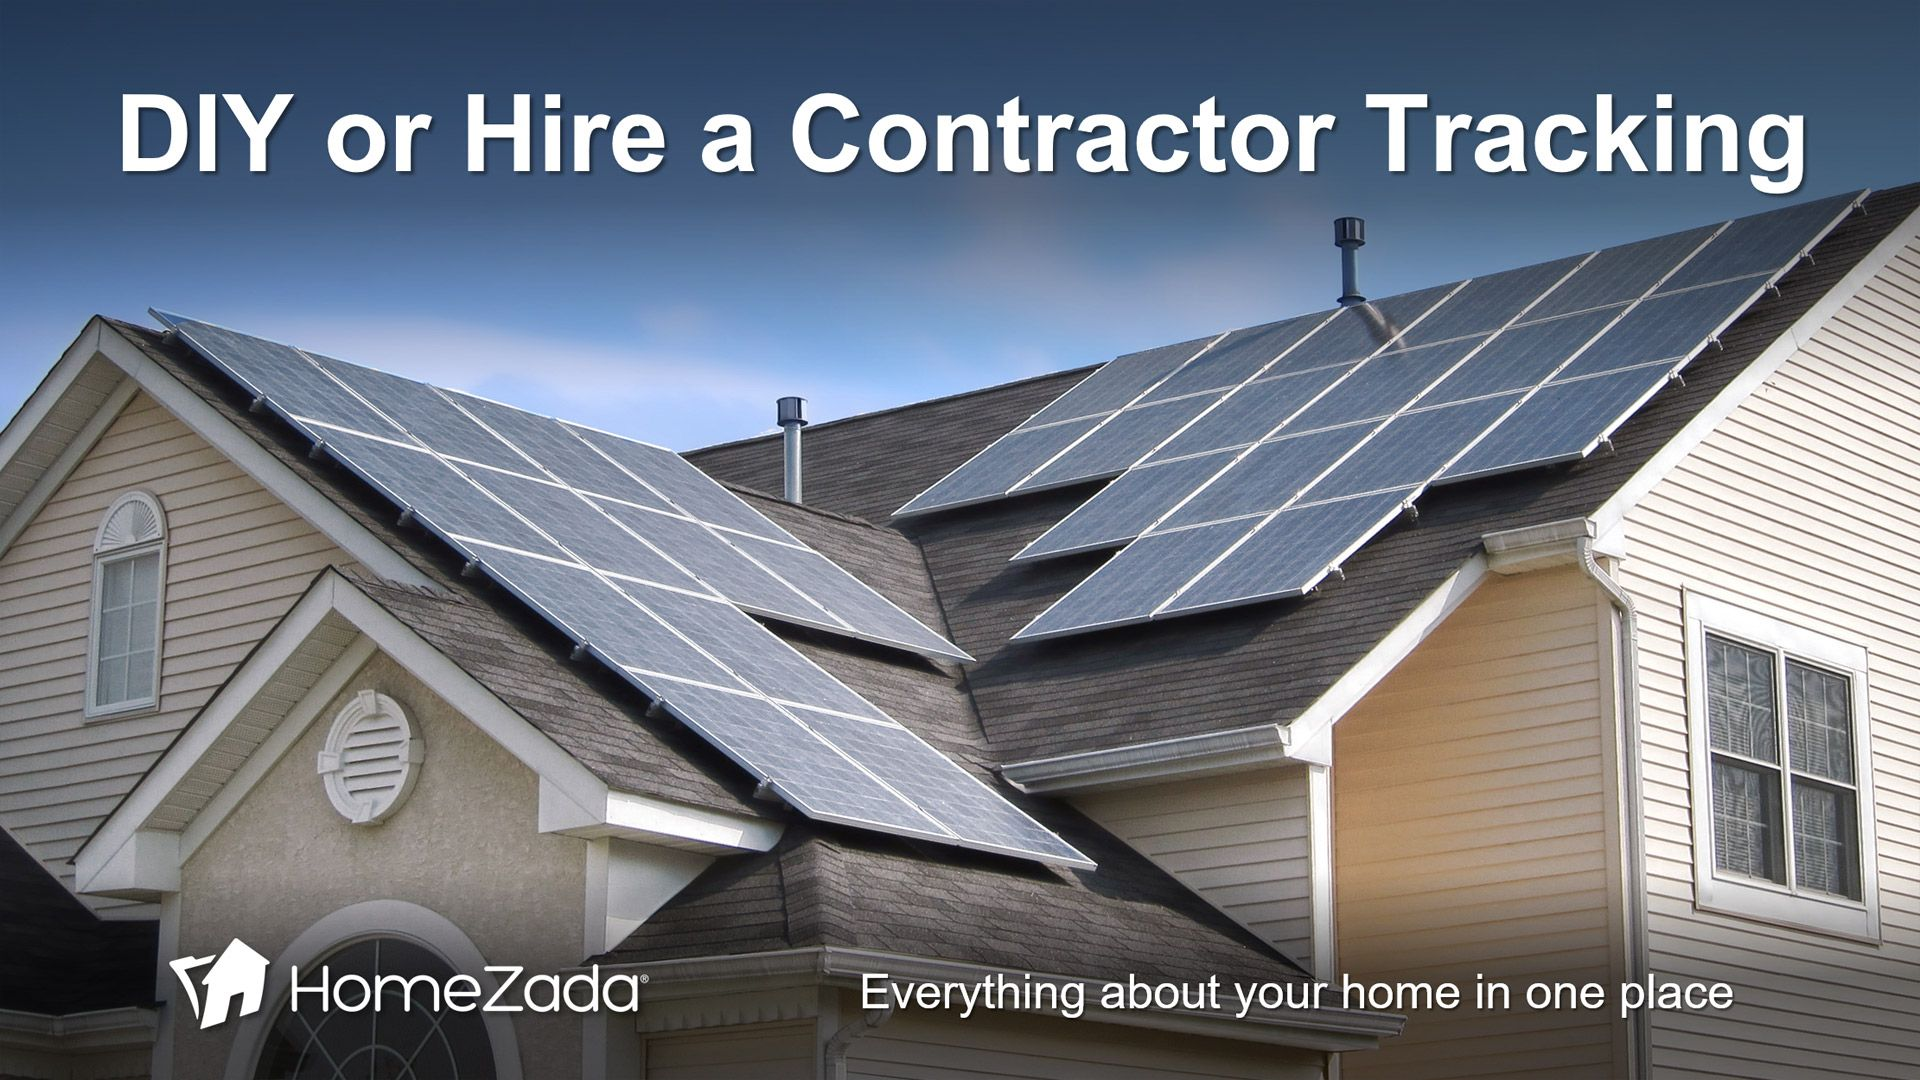 Homezada S Home Remodel Project Management Solution Is Easy And Flexible To Use Yes We Made It Easy For Homeow Solar Panels Best Solar Panels Solar Solutions